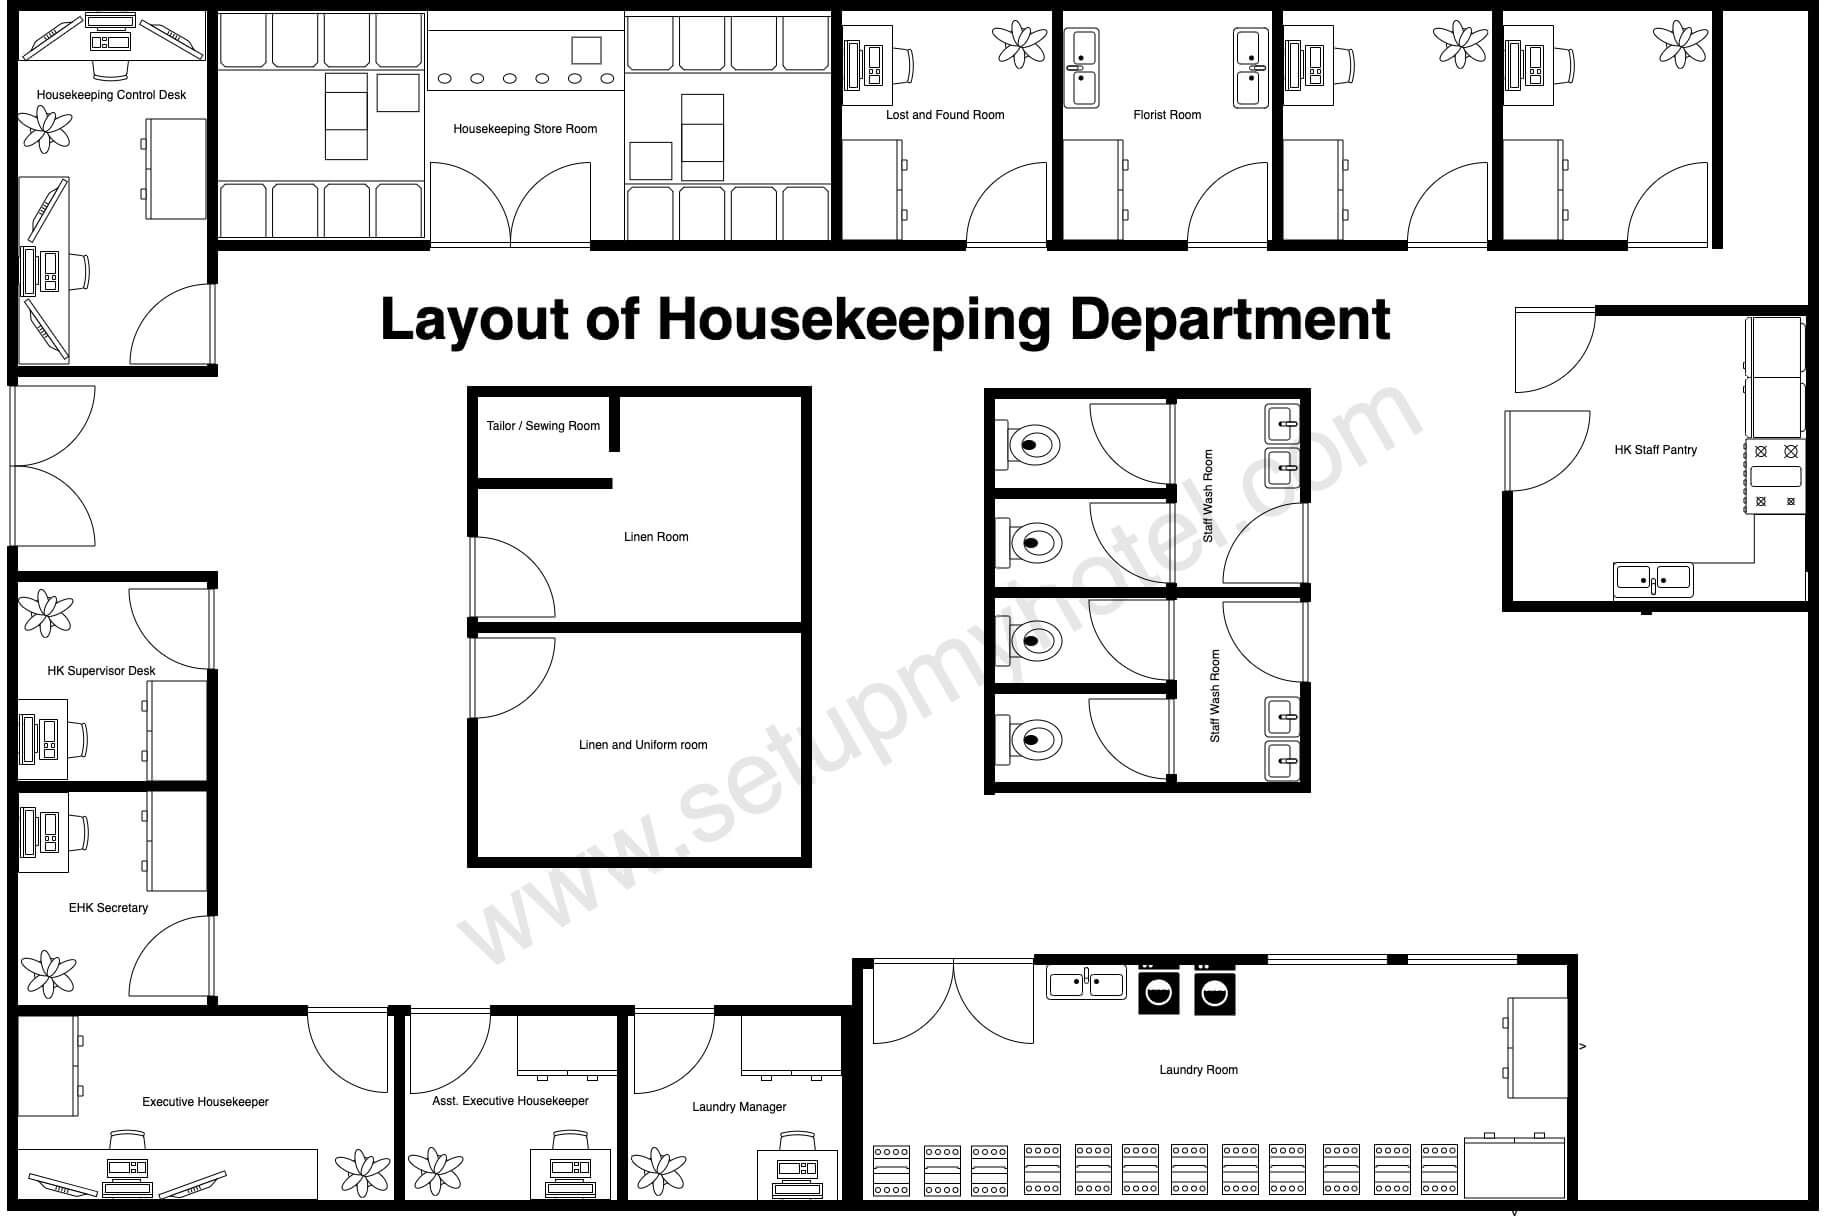 Housekeeping - Layout